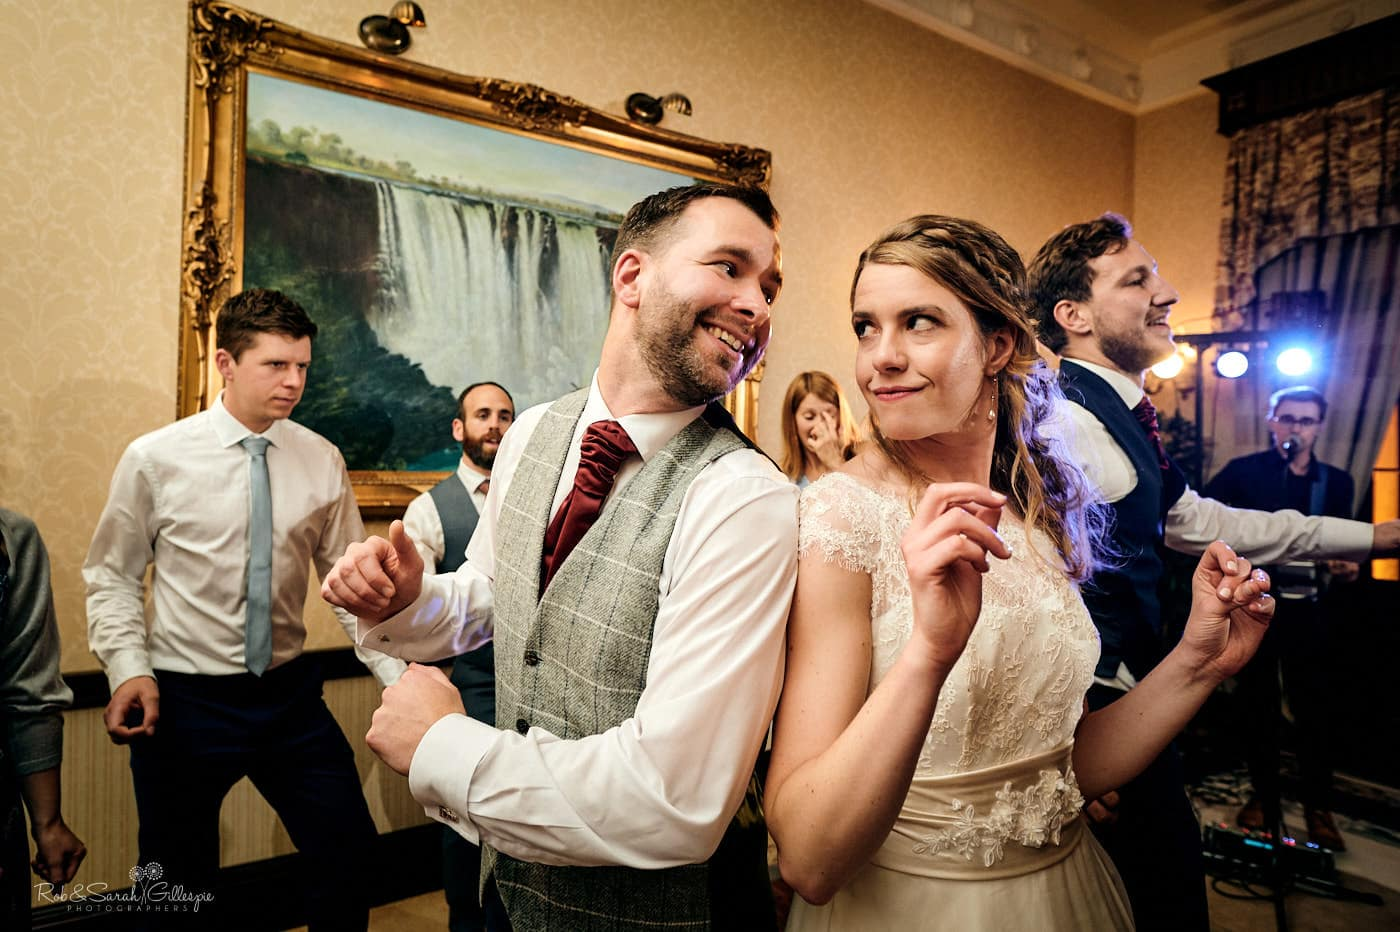 Bride and groom dancing together at Spring Grove House wedding reception